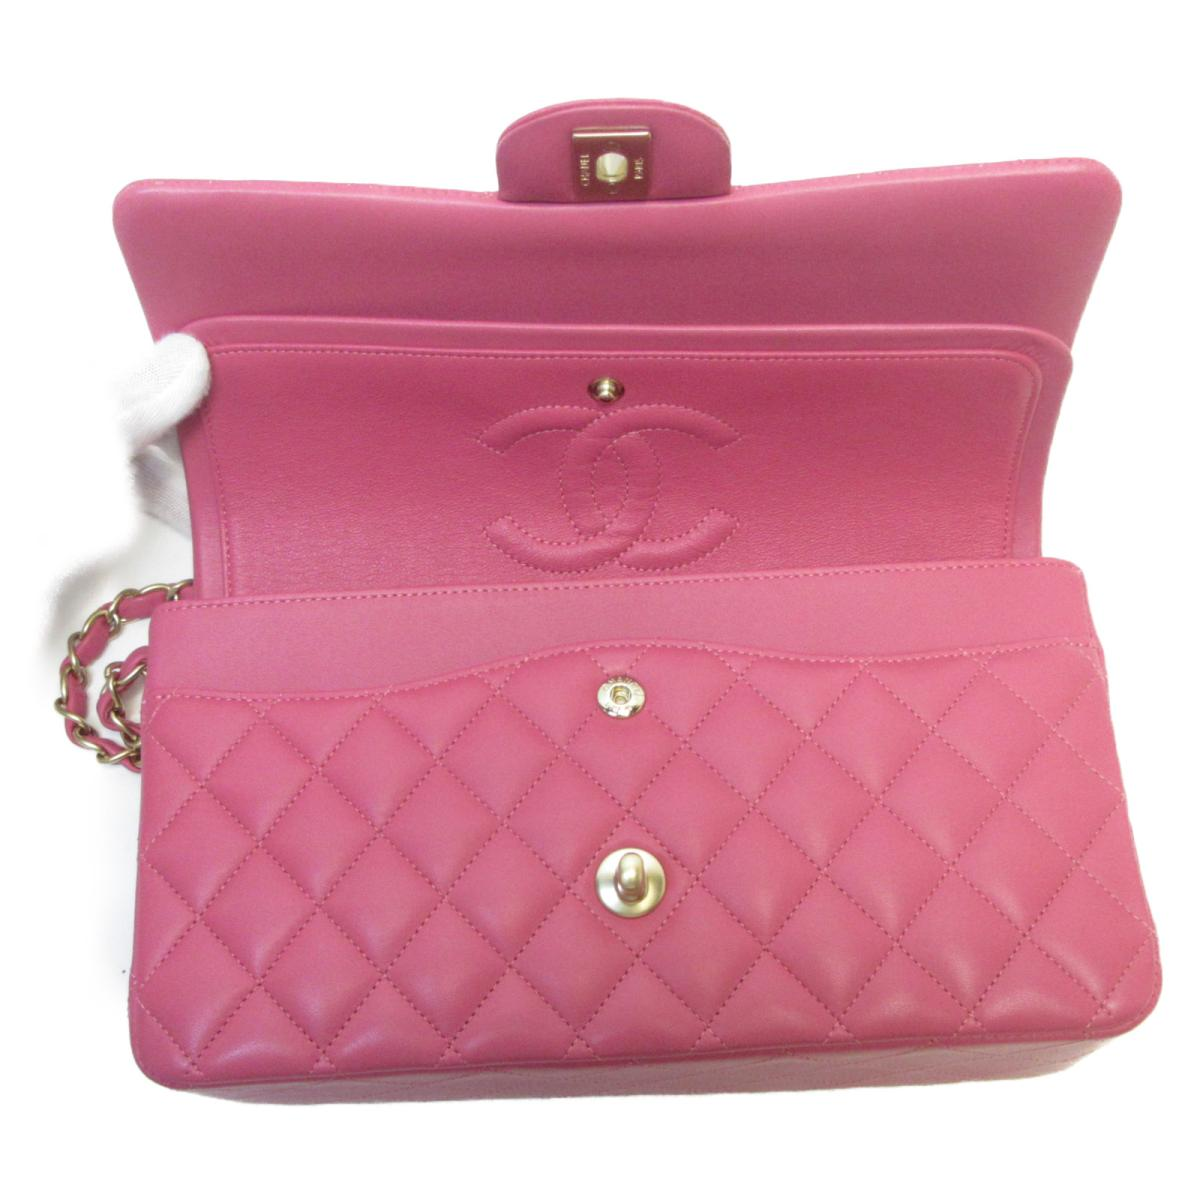 CHANEL バッグ A01112/Pk 桃紅羊皮經典肩背包Classic Double Flap